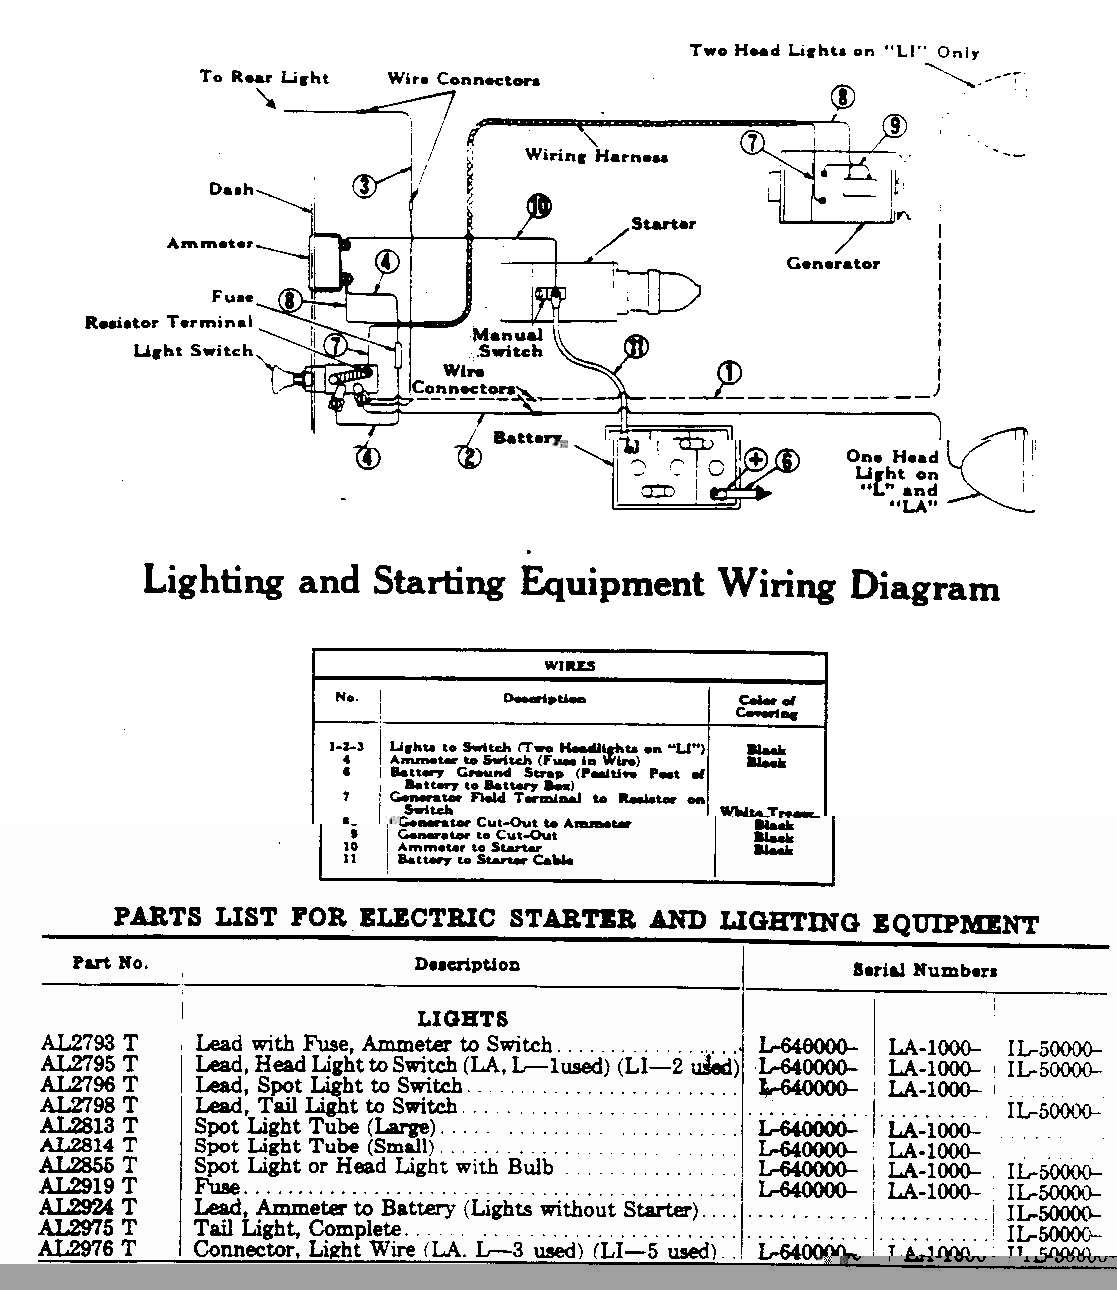 john deere mower wiring diagram la 105  john  free engine image for user manual download john deere 317 tractor wiring diagram john deere 750 tractor wiring diagram